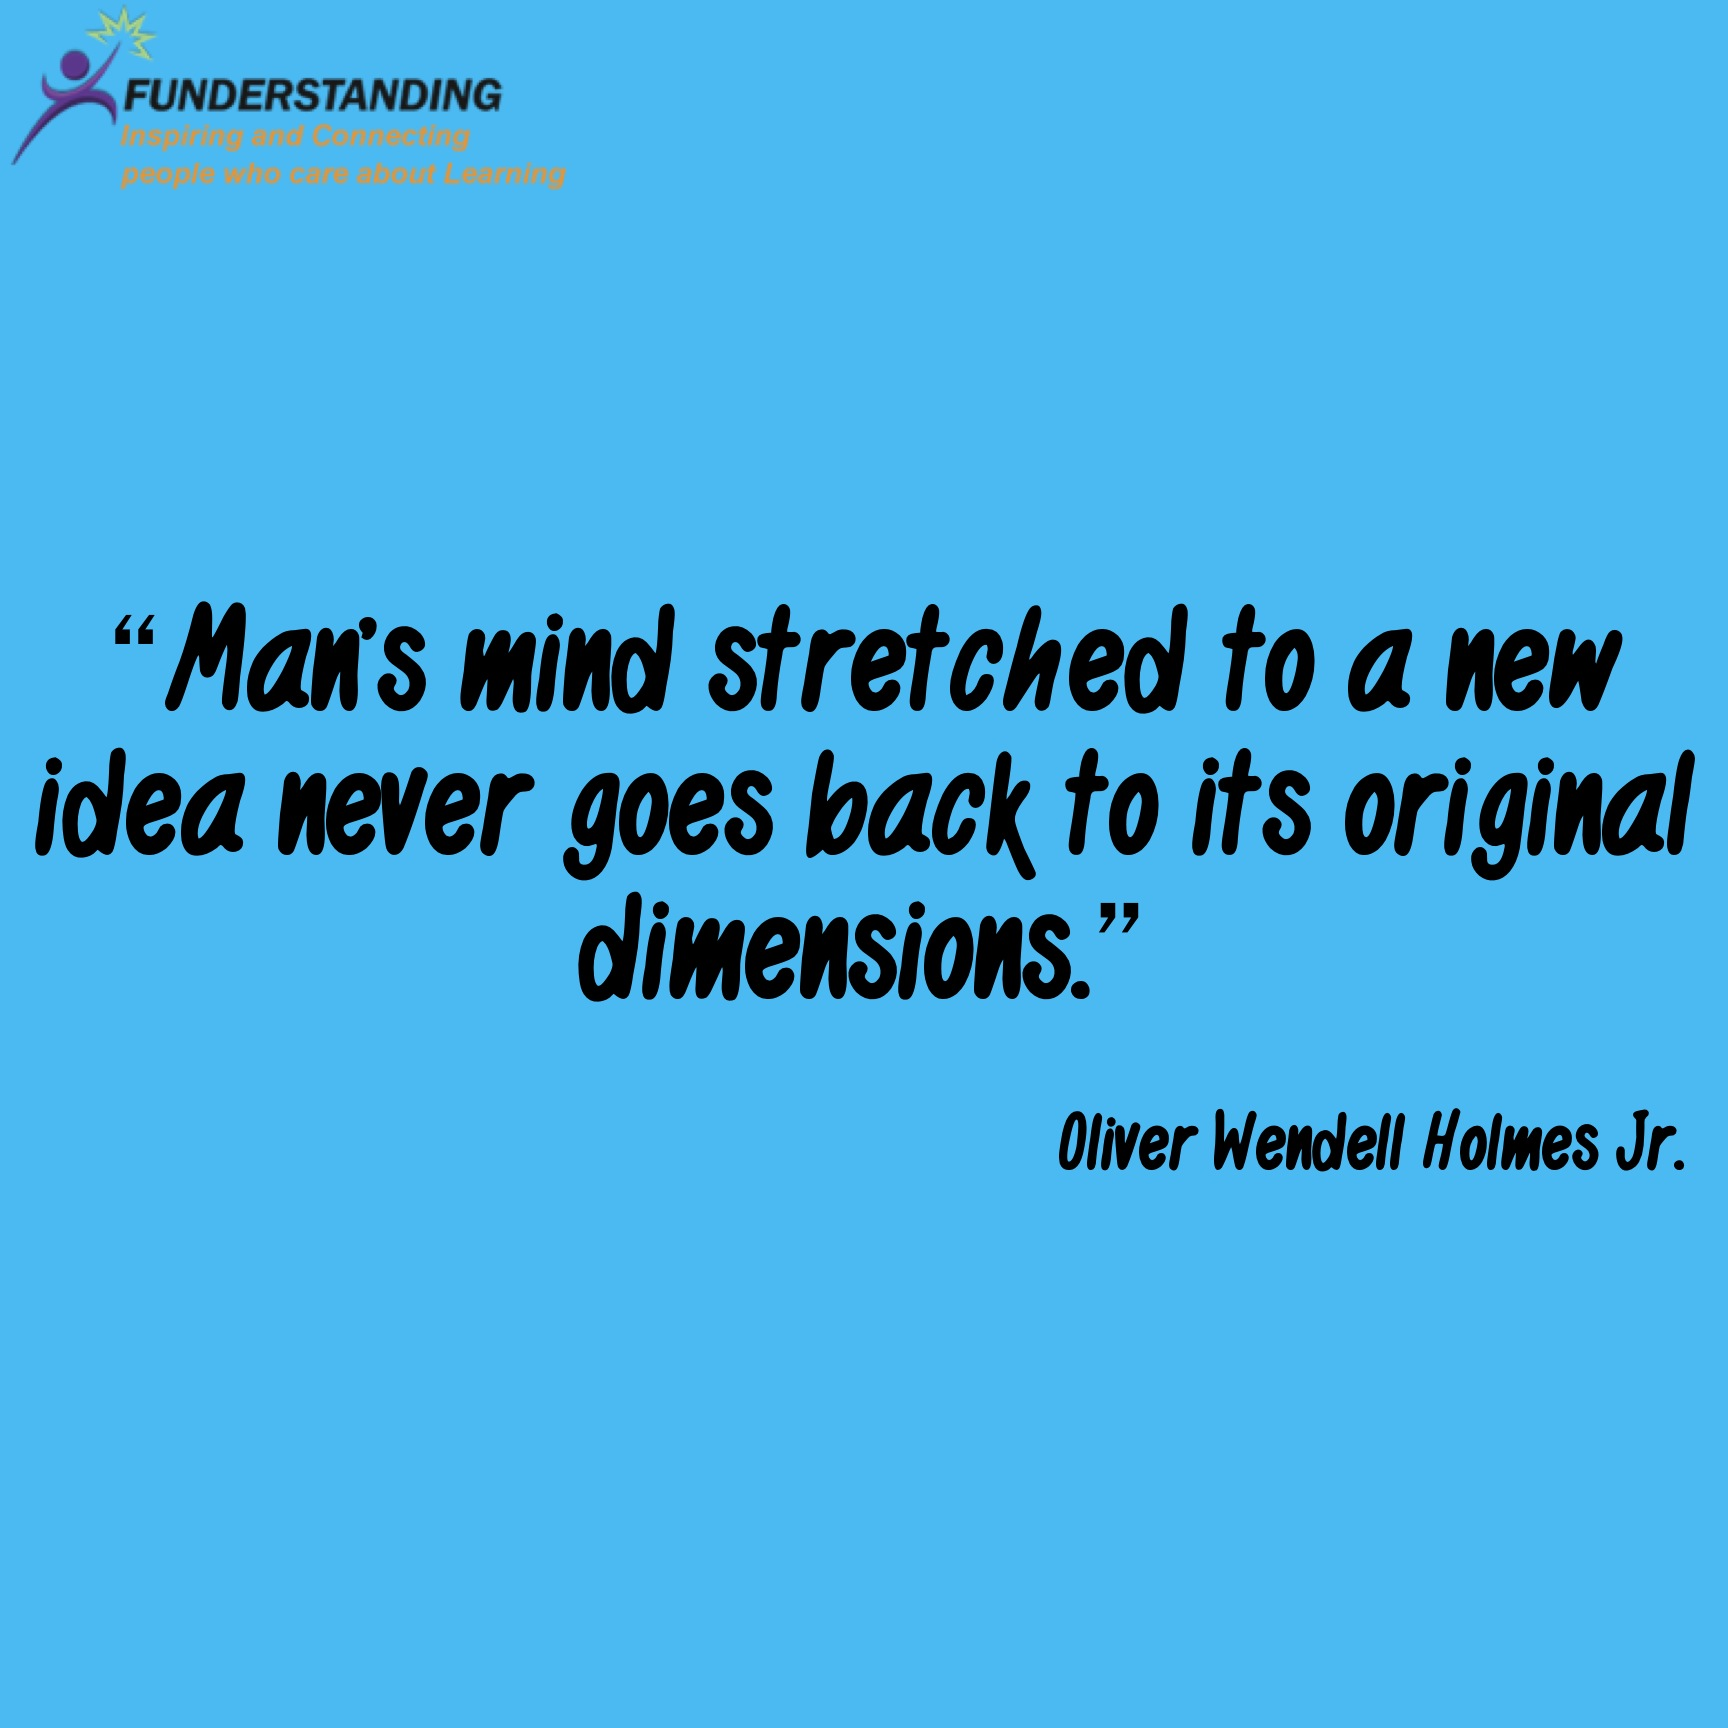 Direct General Quote Educational Quotes  Funderstanding Education Curriculum And